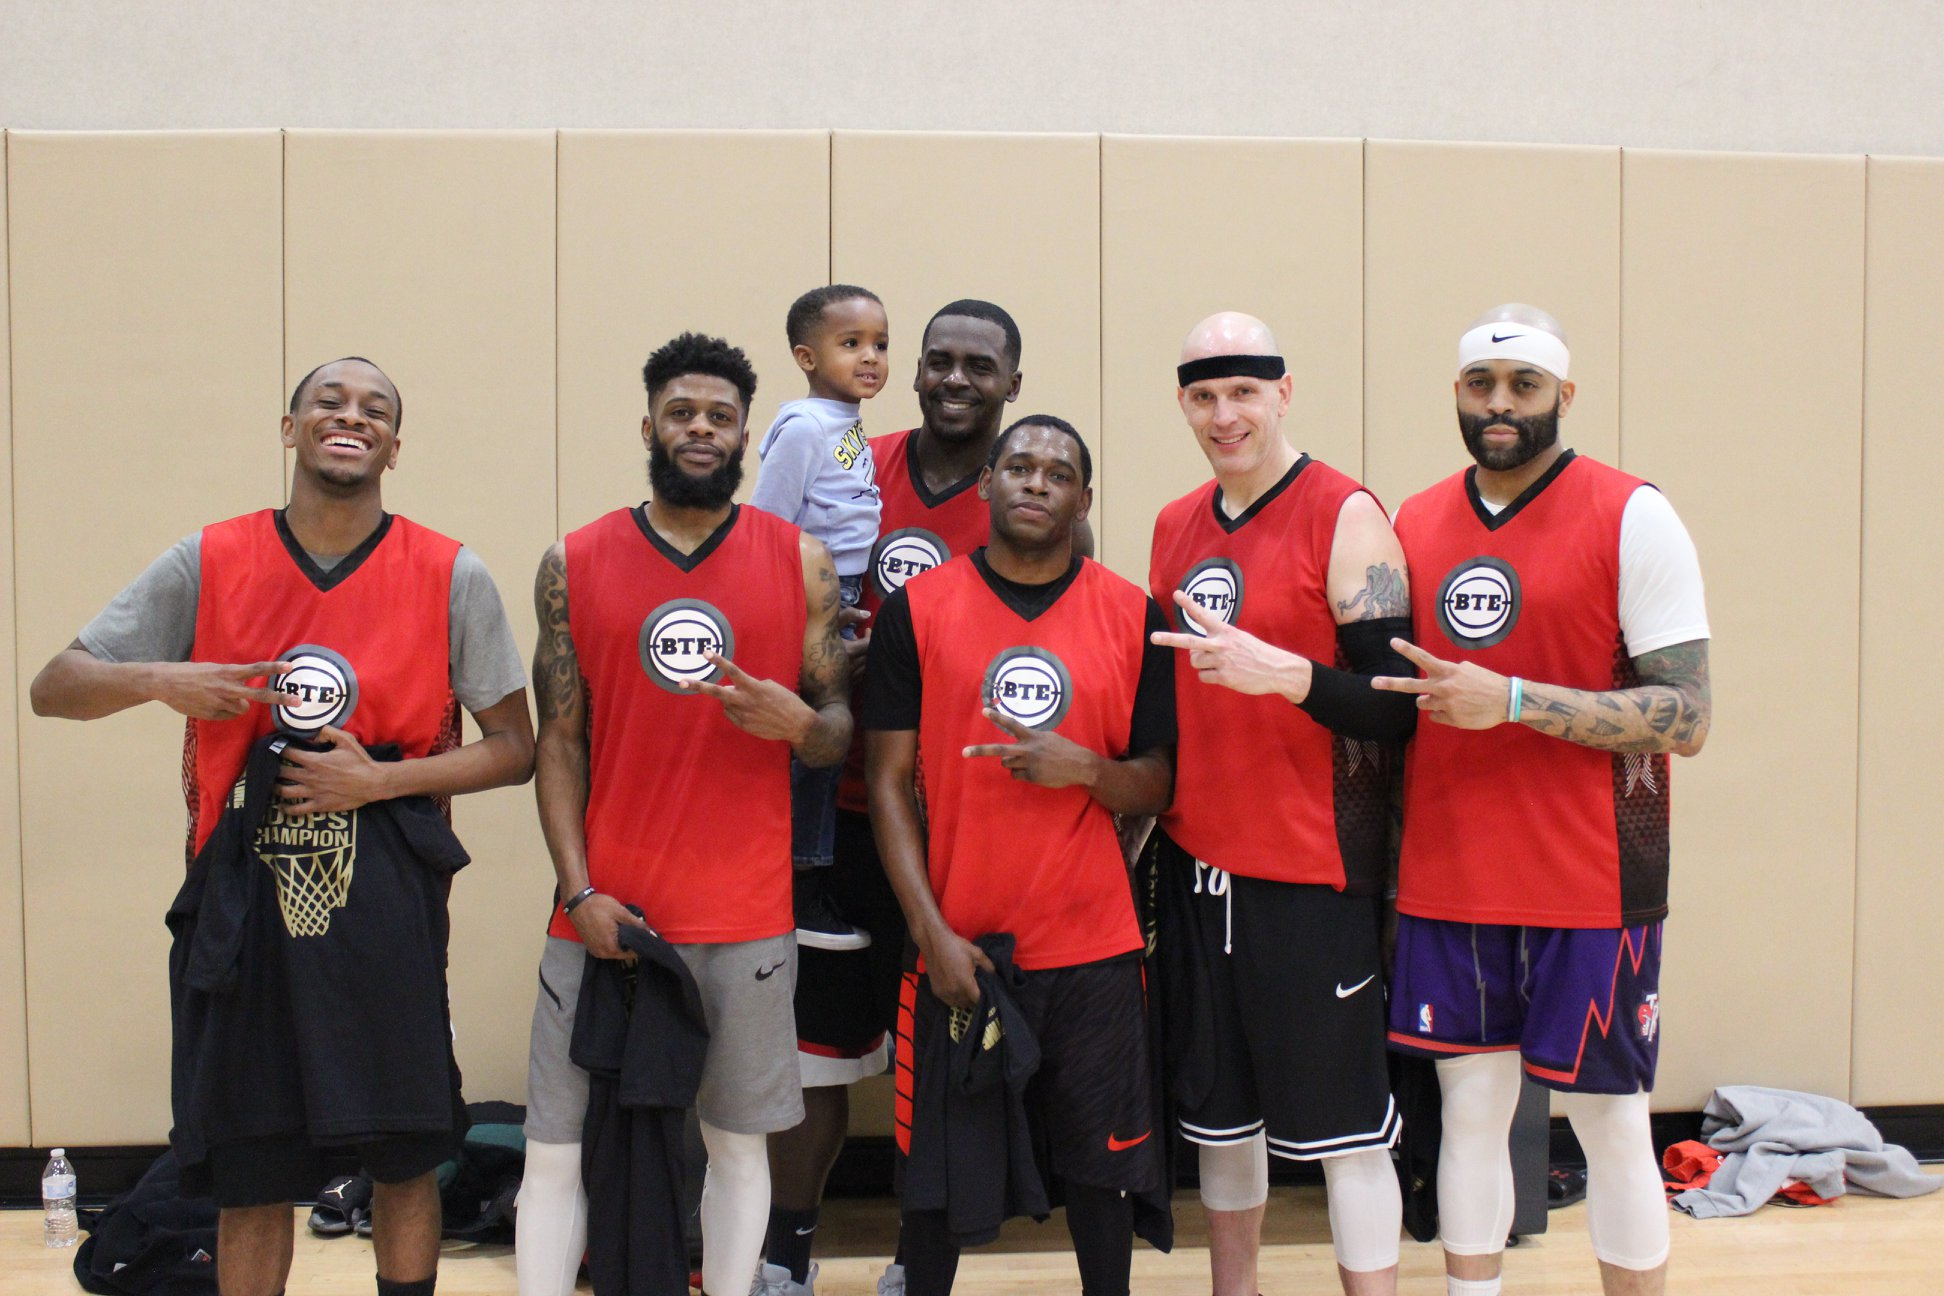 Jordan Cannon (second from the left) after winning the Summerlin Open League